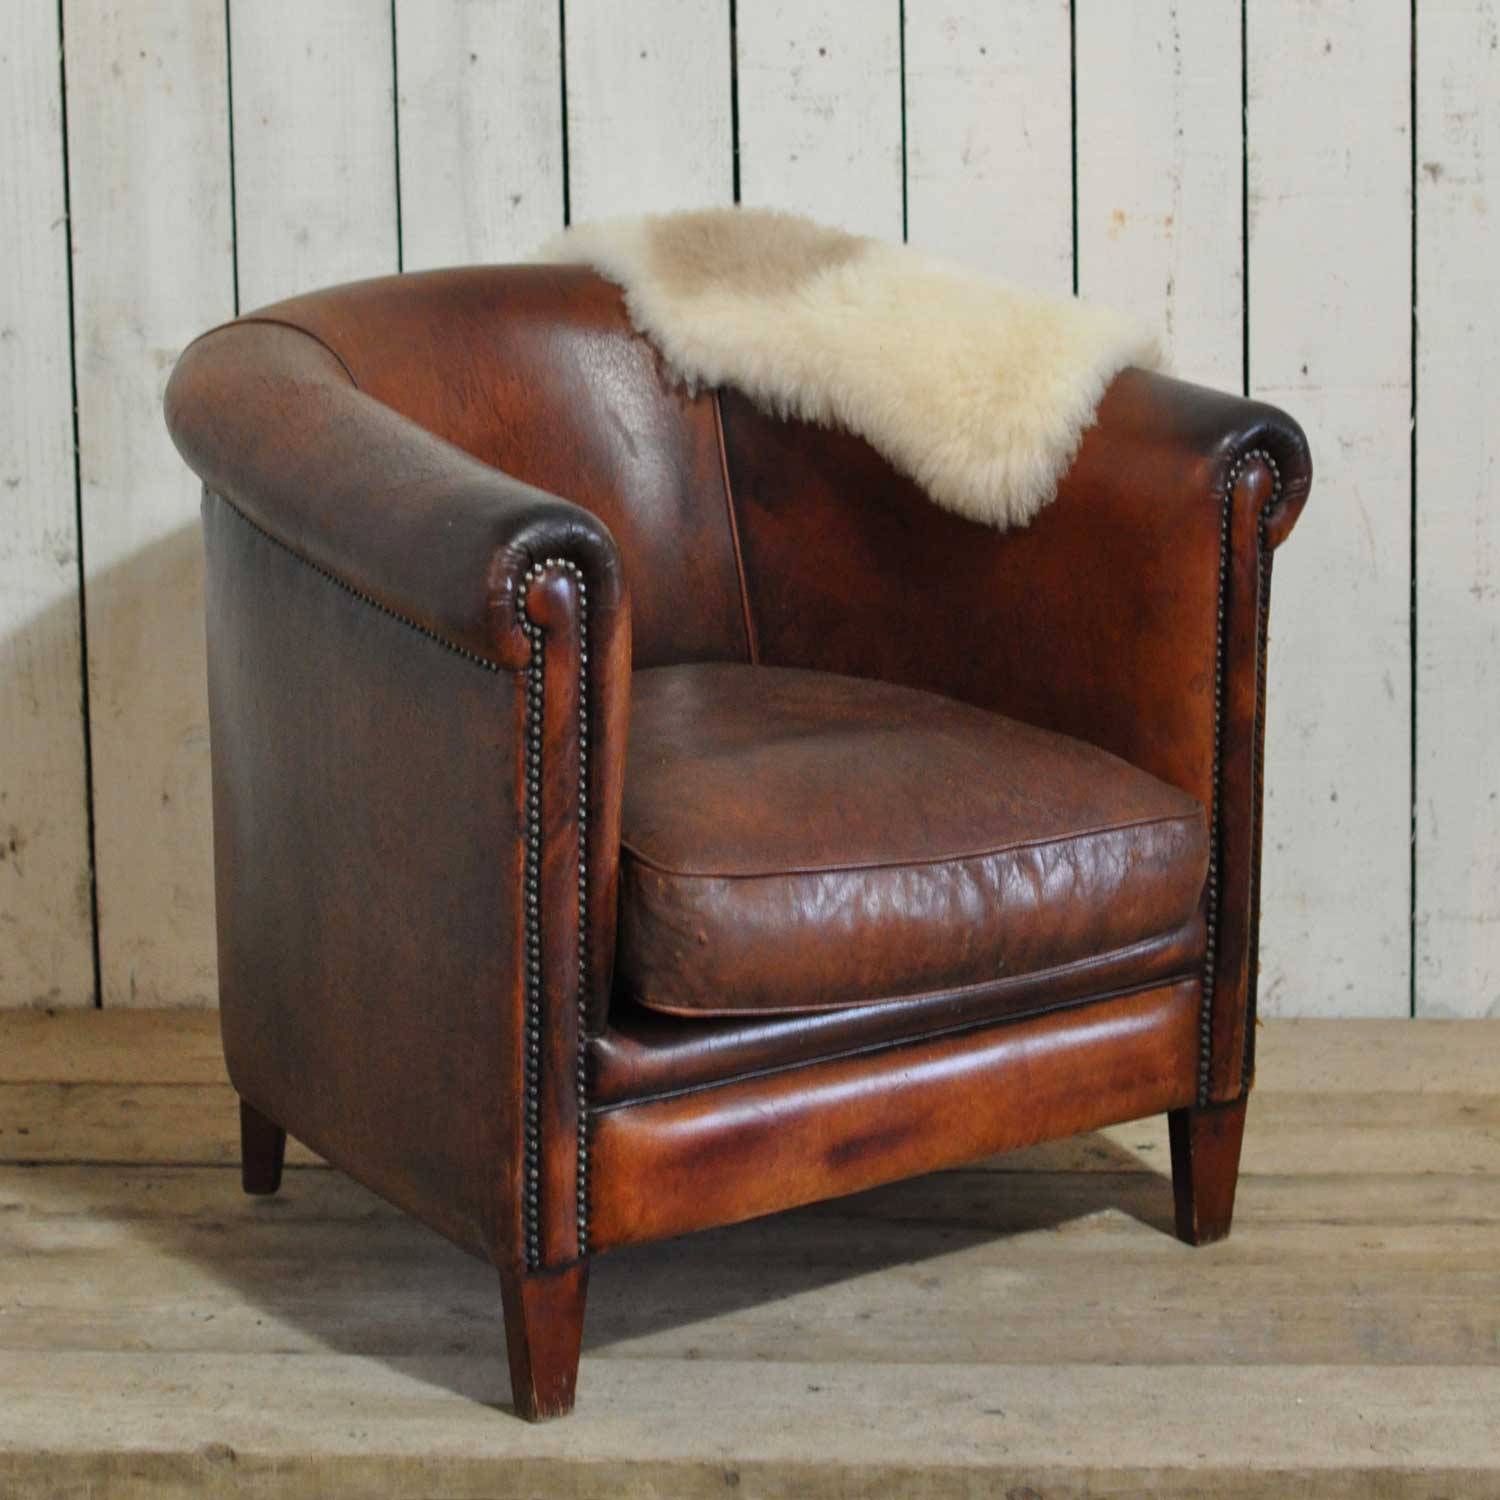 Vintage Club Chairs Vintage Worn French Leather Club Chair With Arms Home